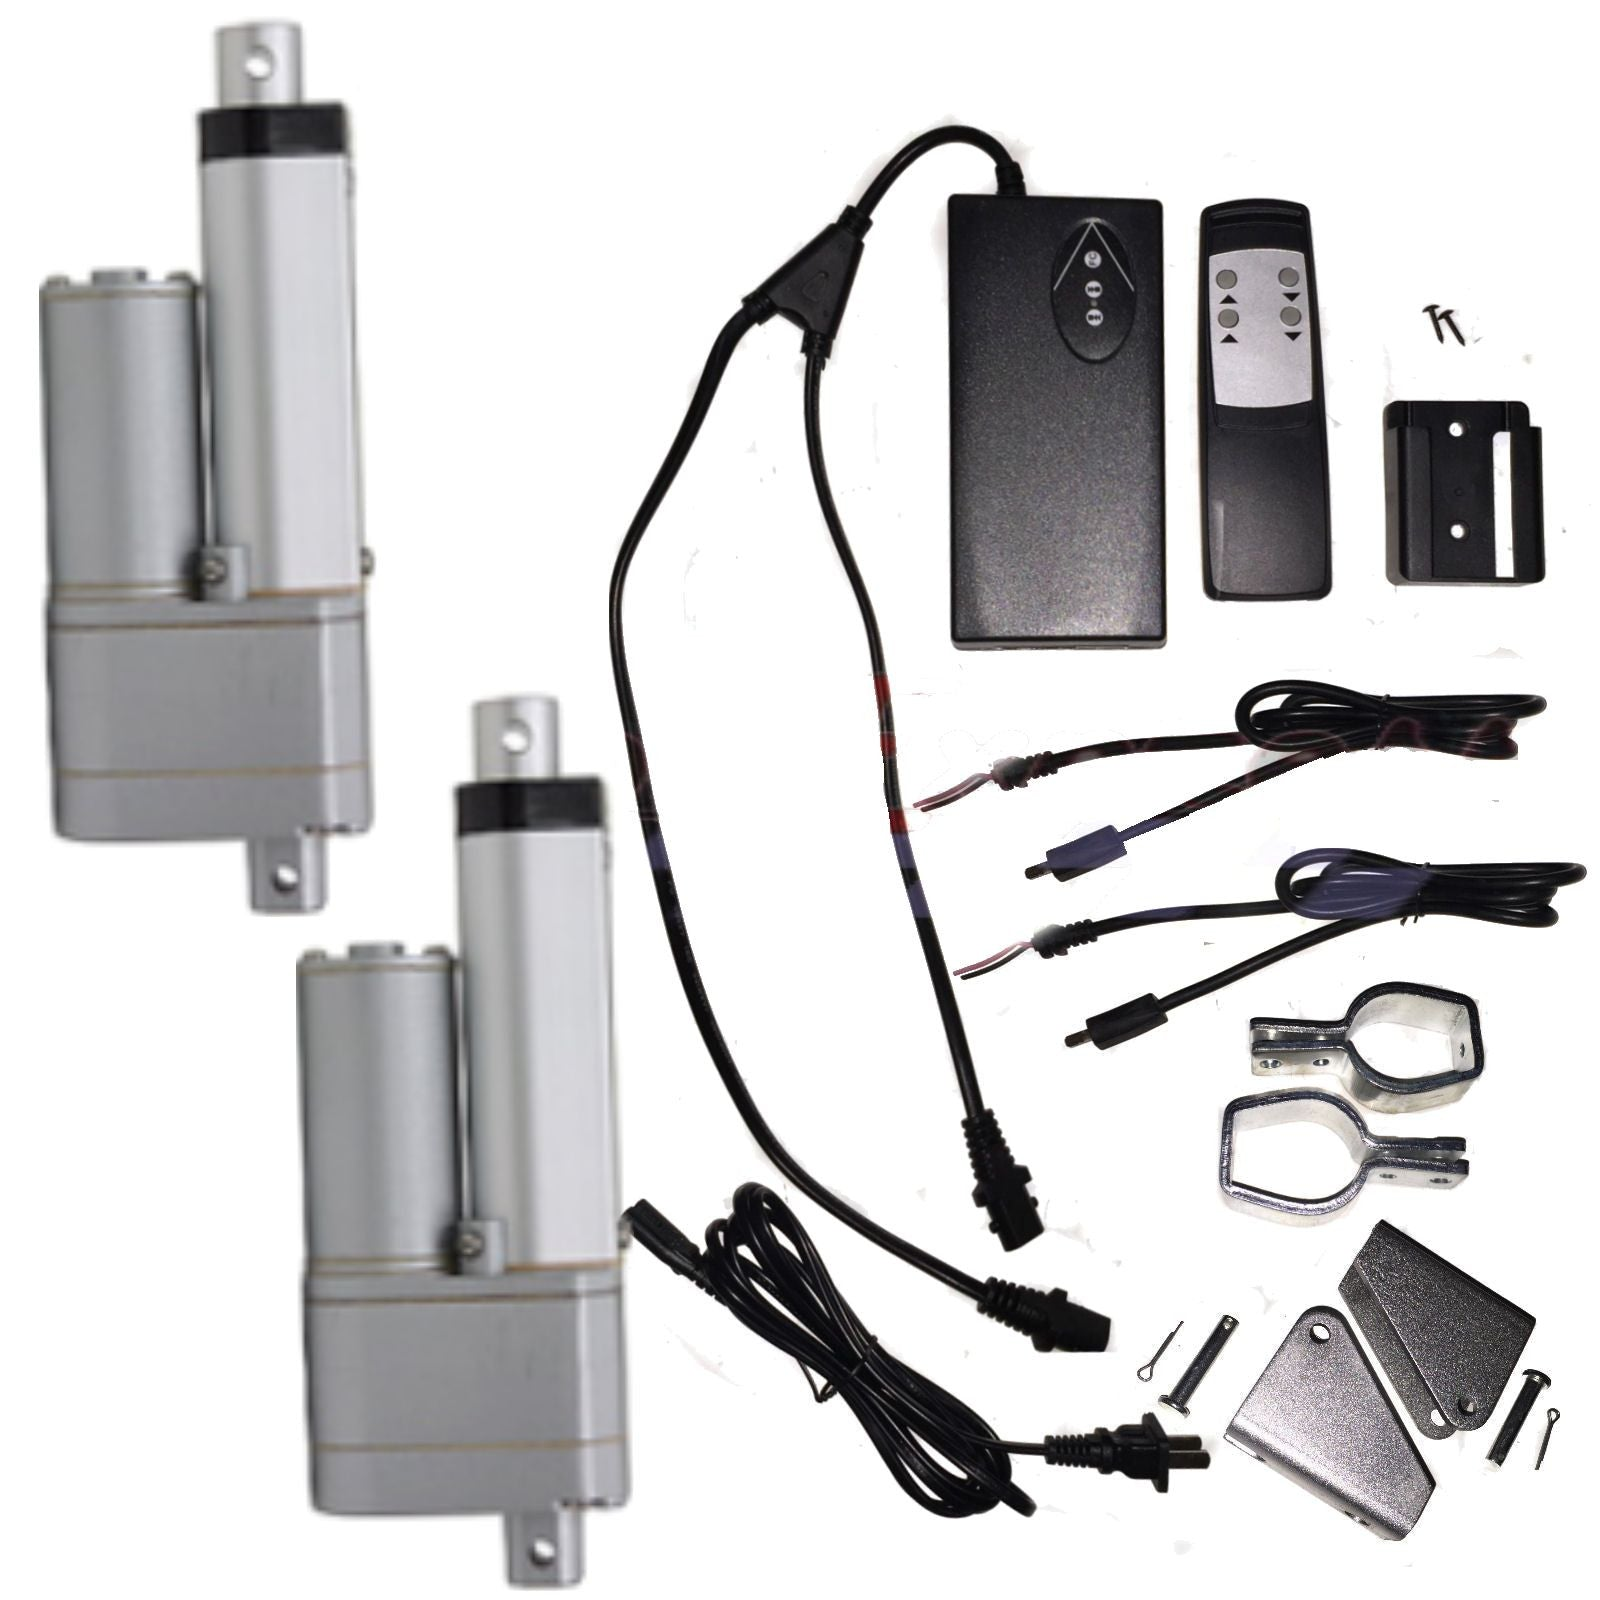 "2 Linear Actuators 4"" inch Stroke 12V 110V Power Supply With Remote and Brackets - AE-Power"